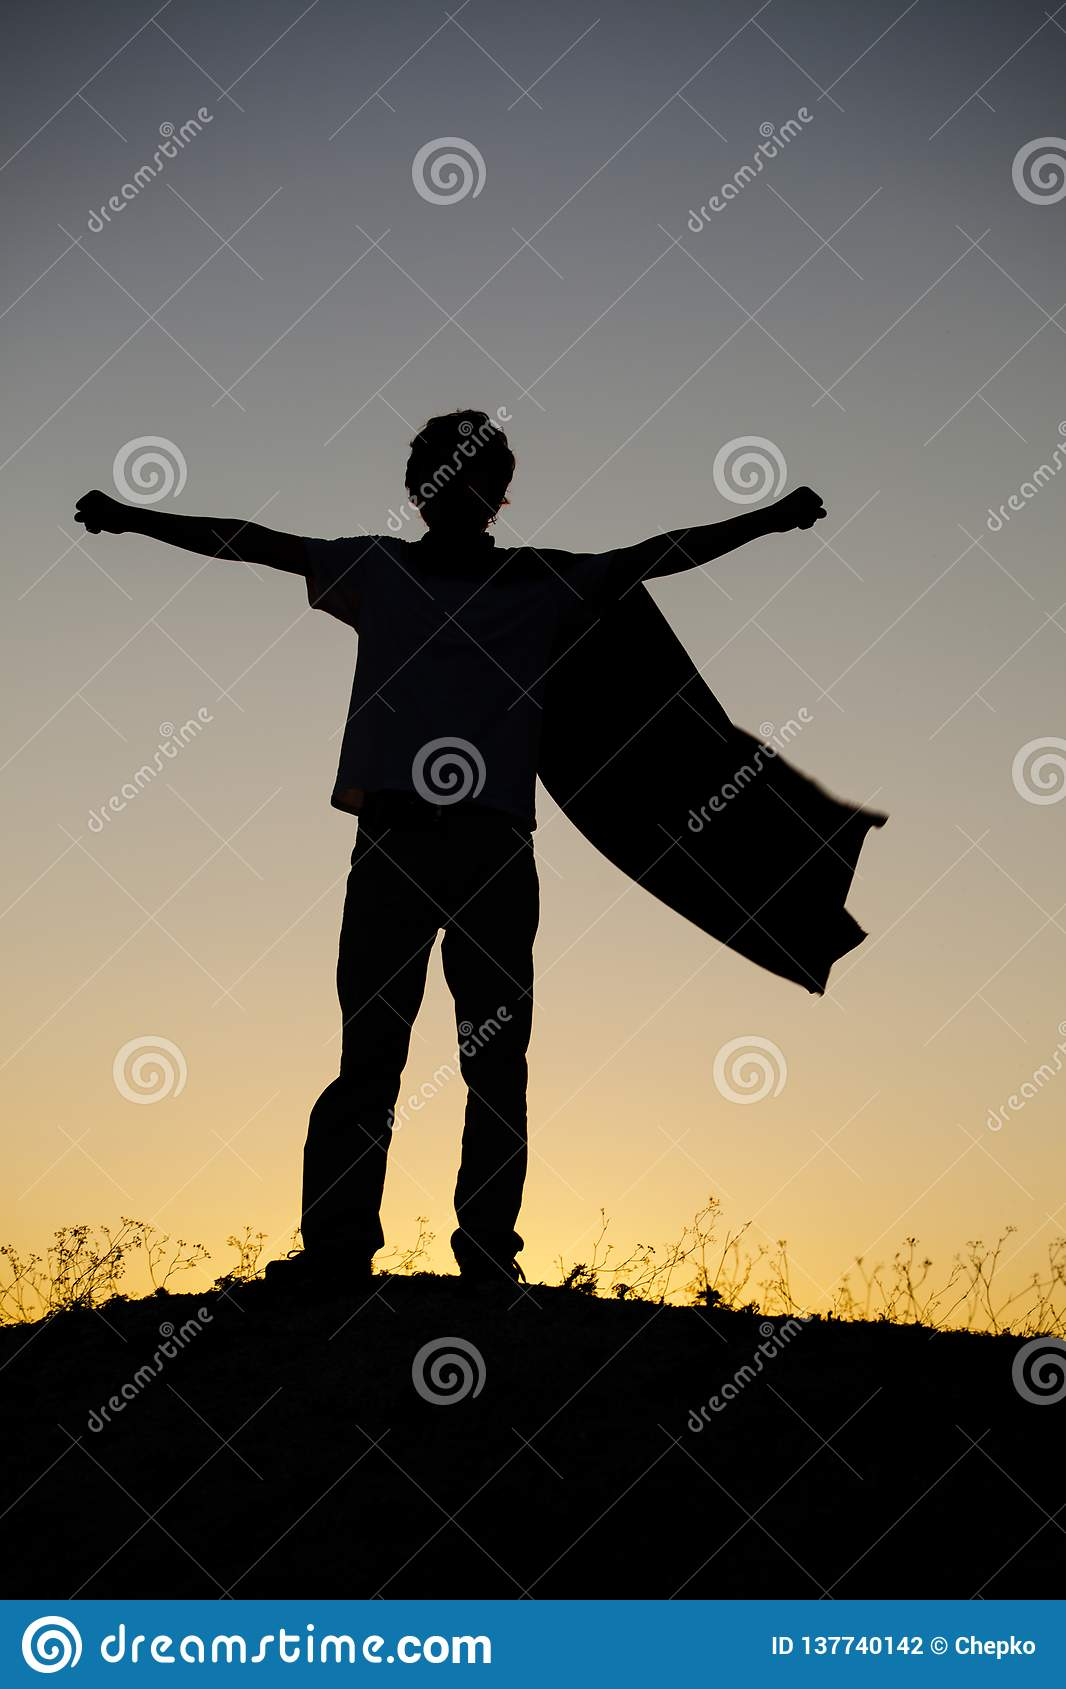 Boy playing superheroes on the sky background, teenage superhero in a red cloak on hill